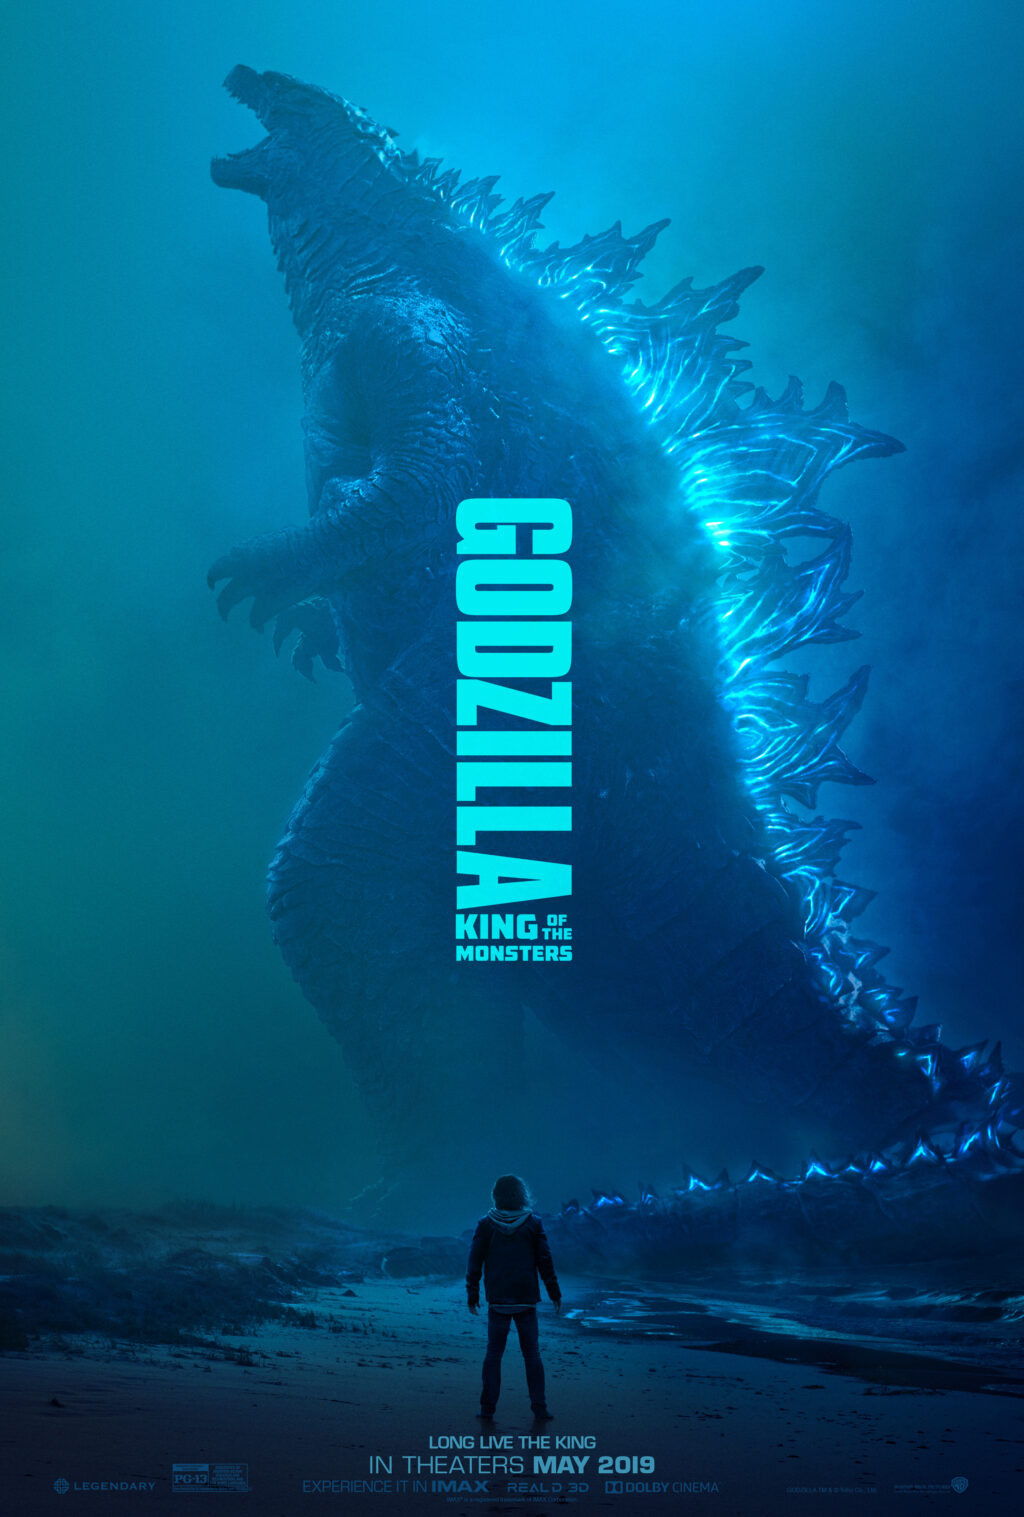 GZA2 VERT TSR DOM 2764x4096 master rev 1 2 1024x1517 - Video Breaks Down Everything You Might Have Missed in Latest Trailer for GODZILLA: KING OF THE MONSTERS